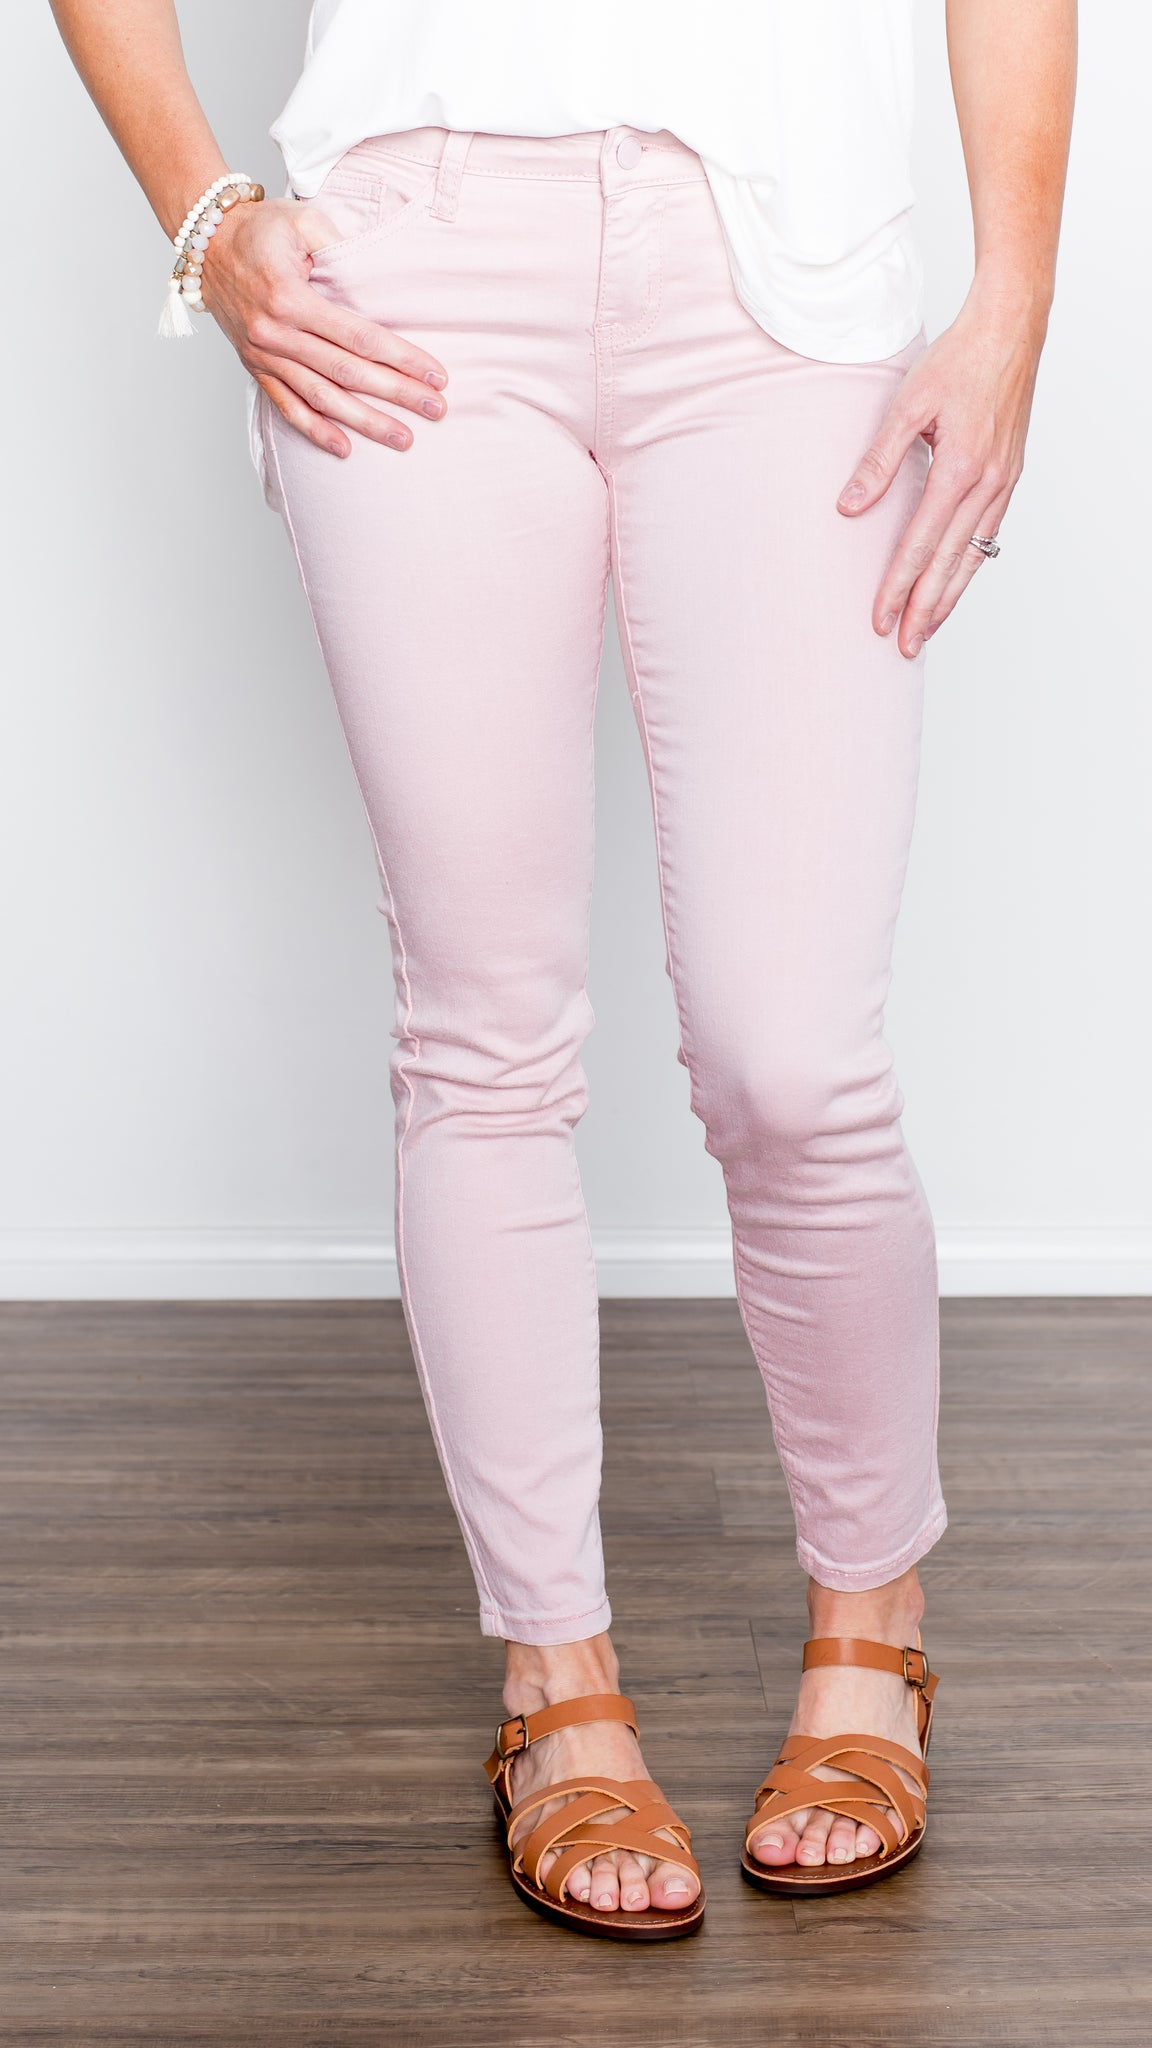 The Rosa Pale Pink Stretch Skinny Jean